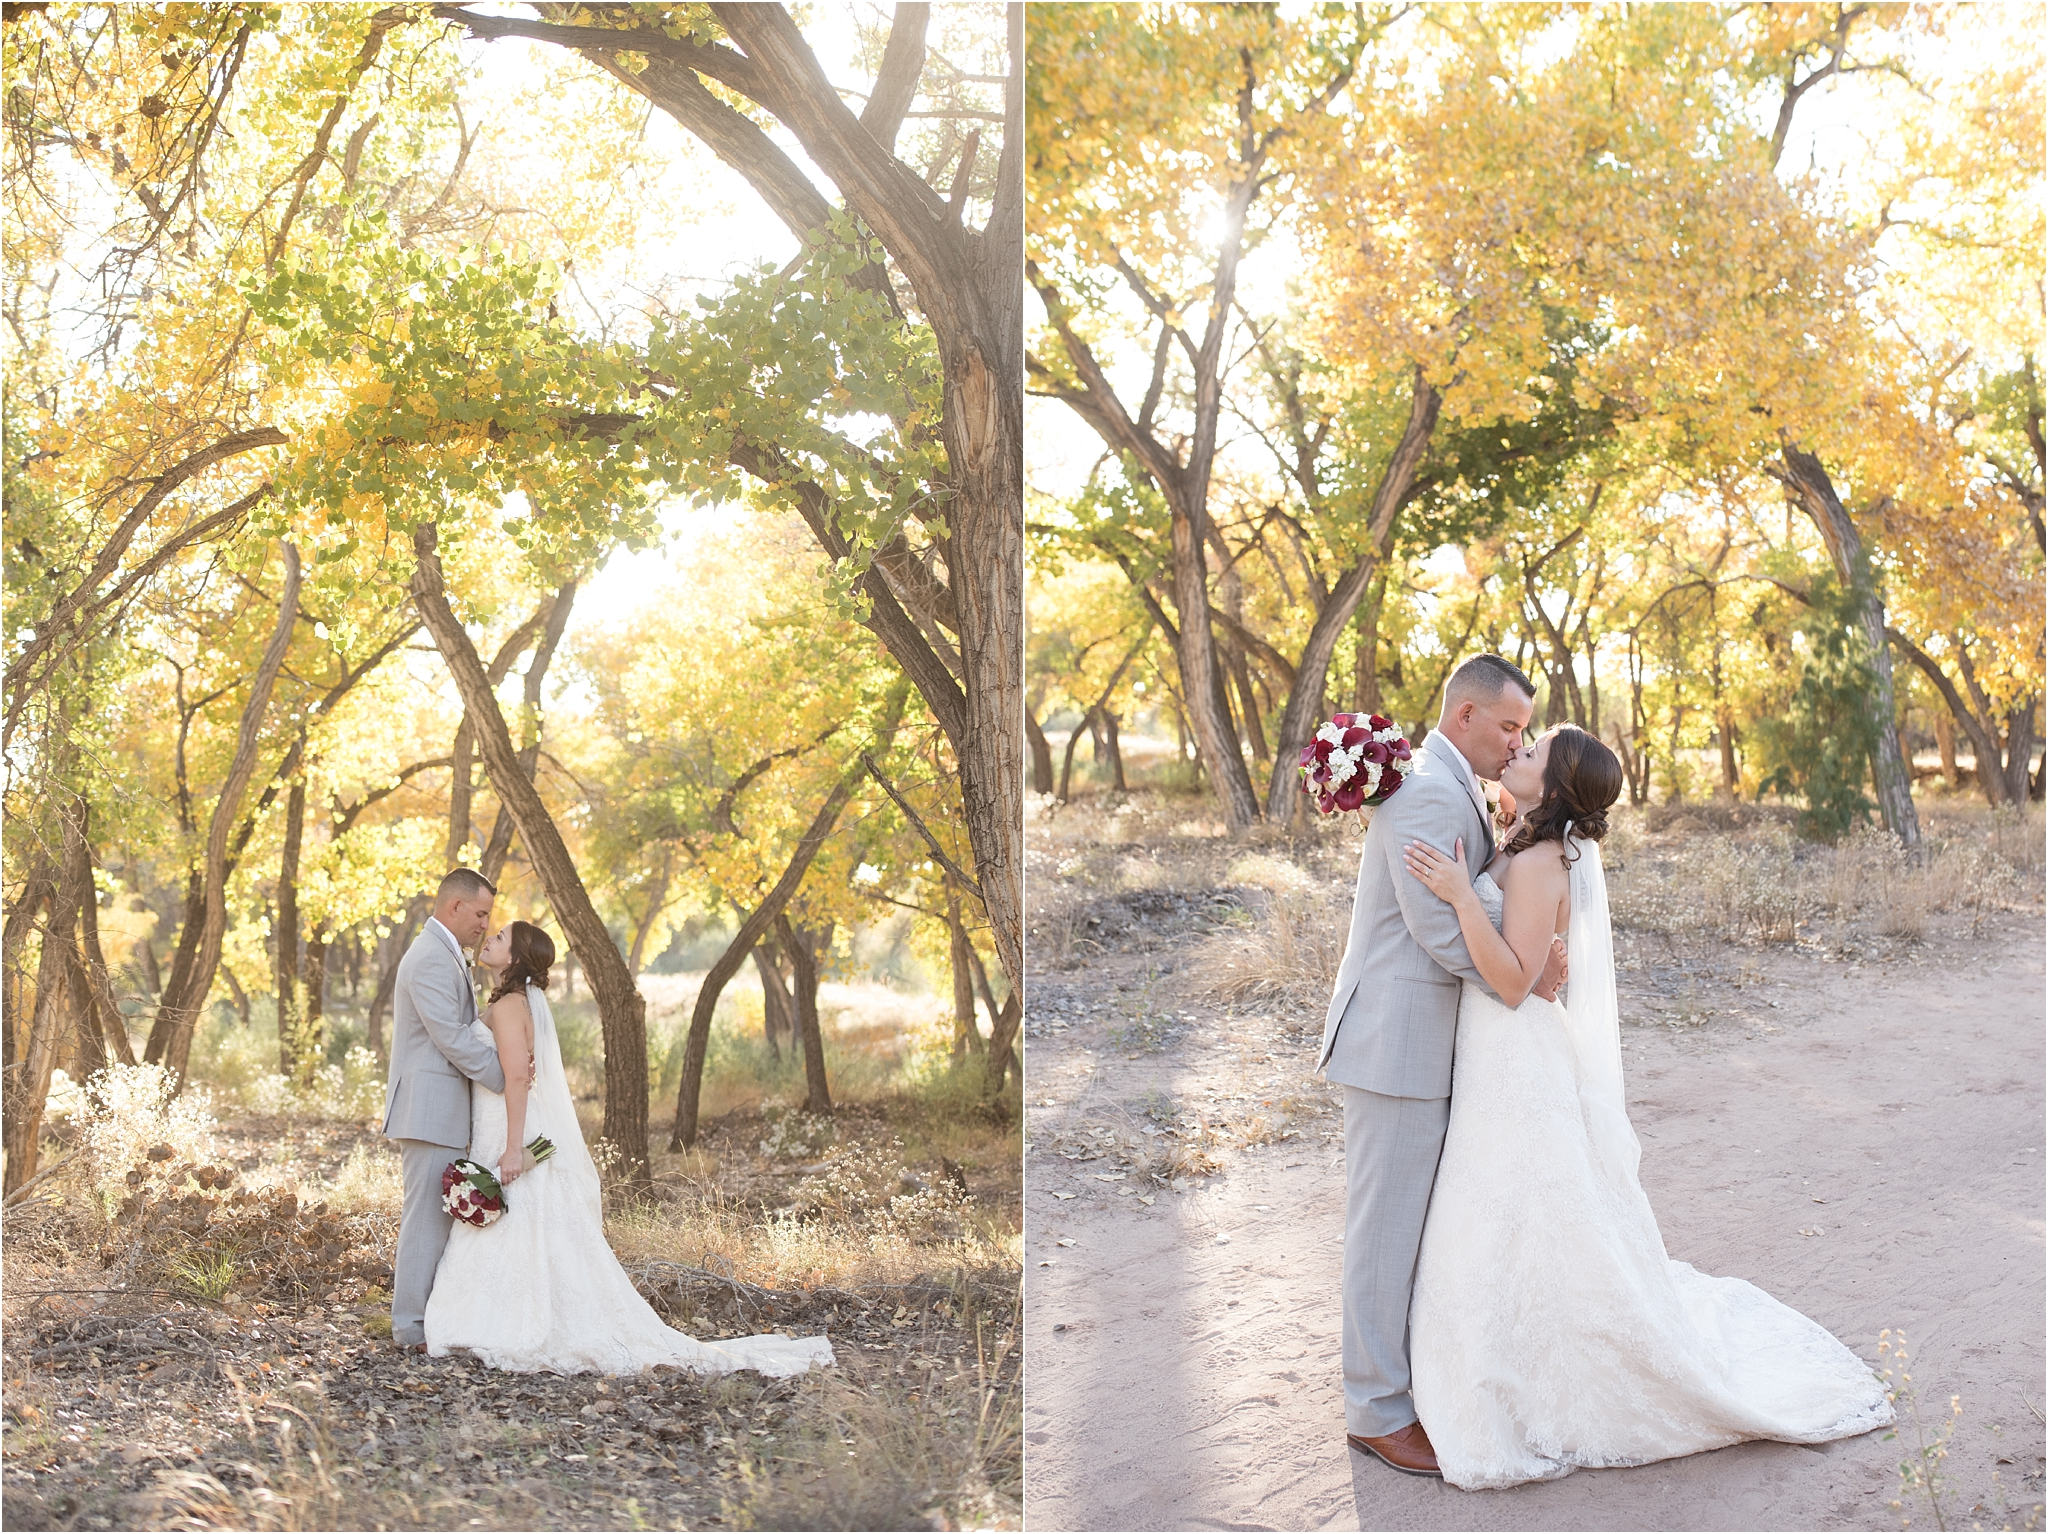 kayla kitts photography - albuquerque wedding photographer - new mexico wedding photographer - desination wedding photographer - cabo wedding photographer_0041.jpg